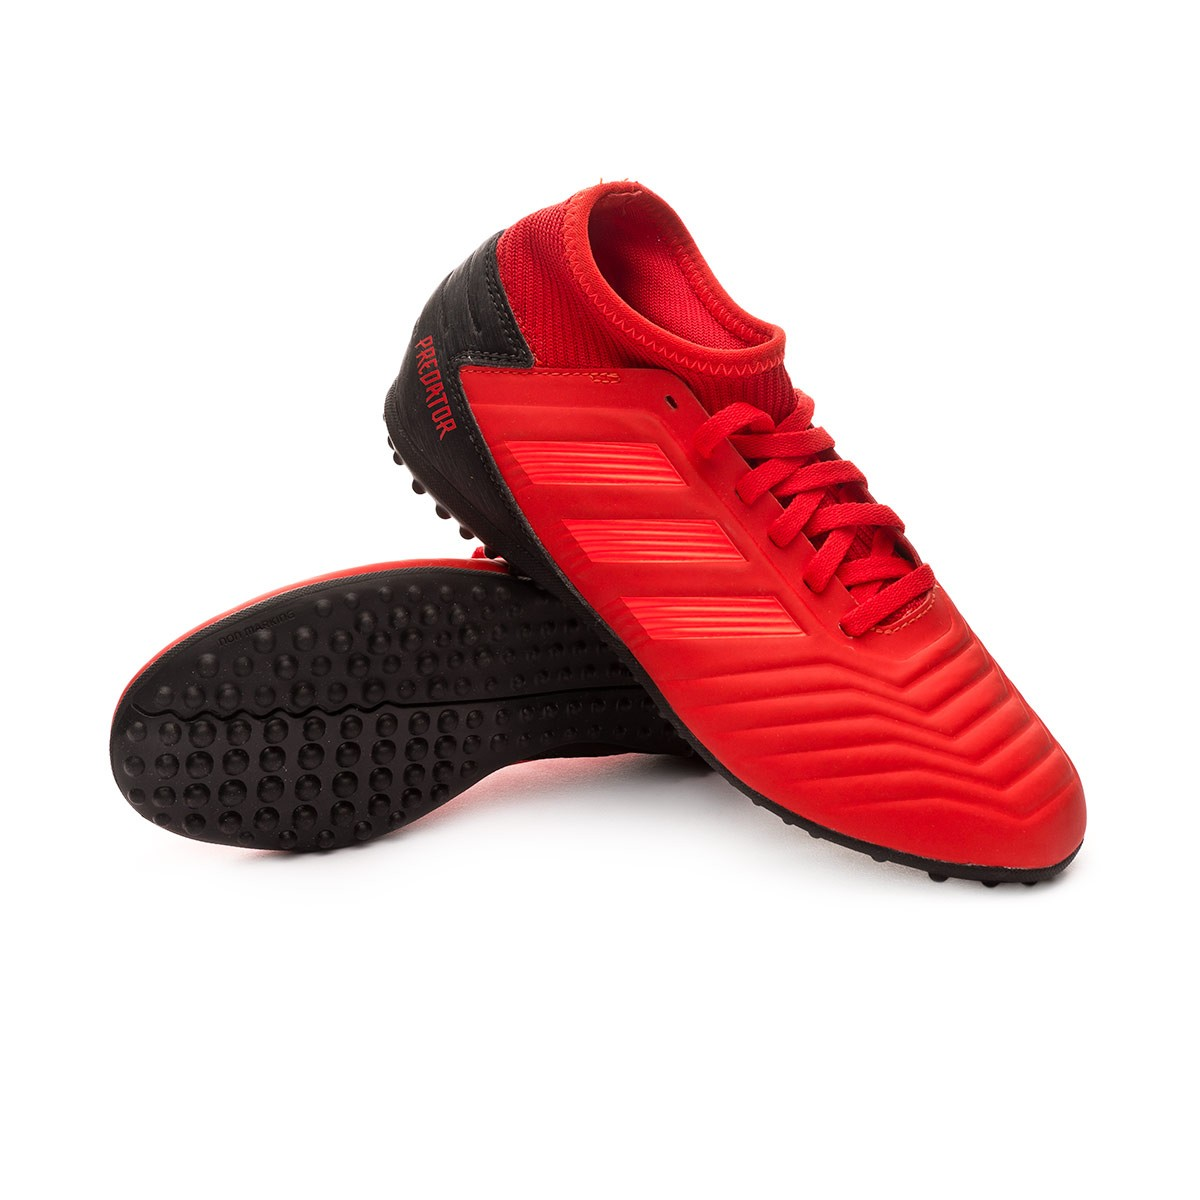 6b72e38d46fc Football Boot adidas Kids Predator Tango 19.3 Turf Active red-Solar red-Core  black - Football store Fútbol Emotion